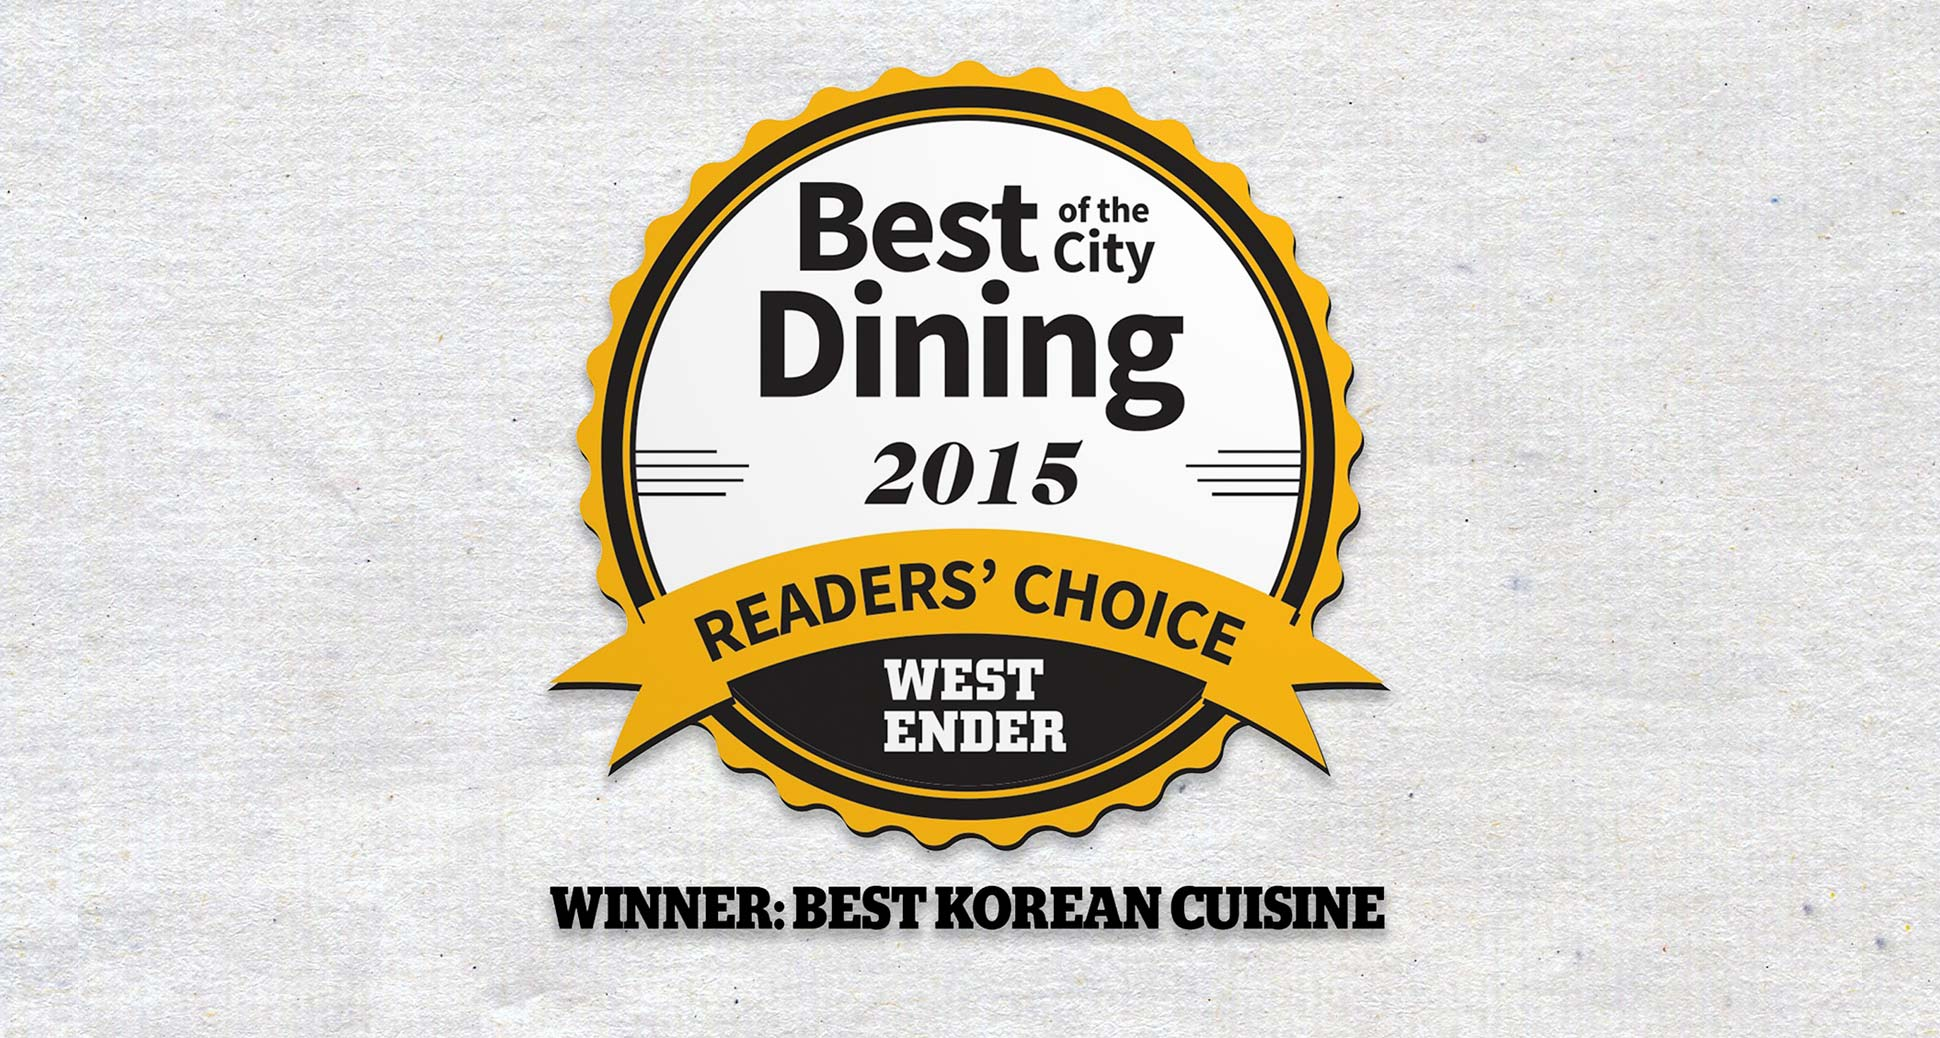 Sura is the best Korean winner of WE Vancouver's best of the city dining awards 2015